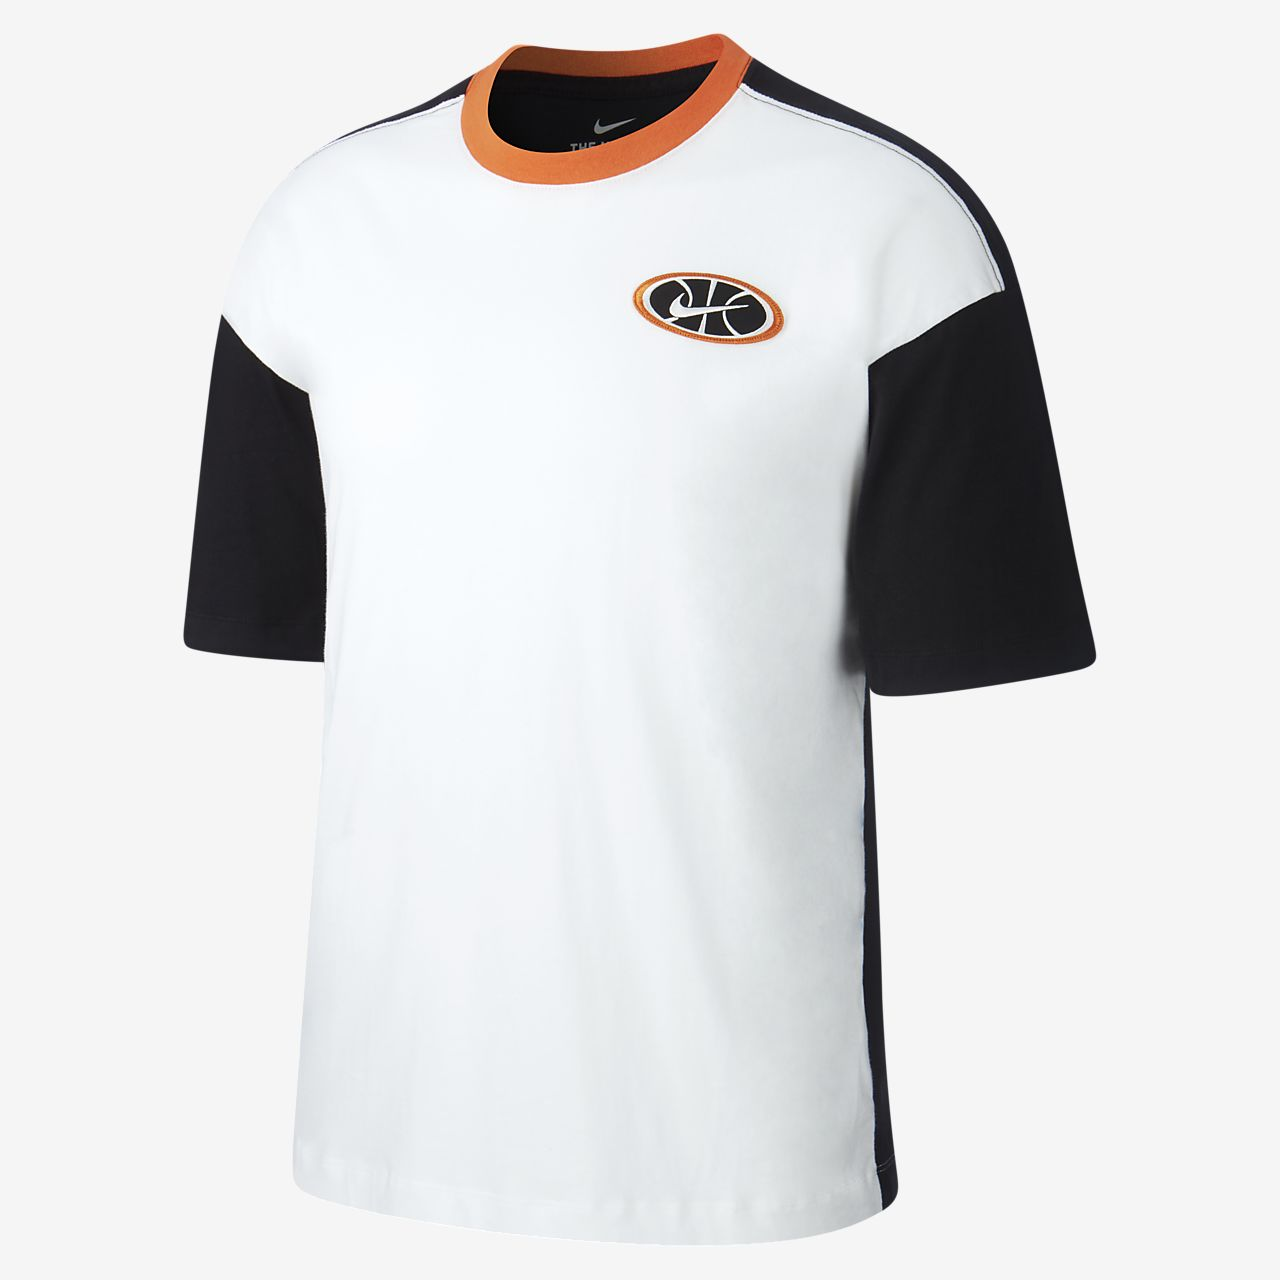 Tee-shirt de basketball Nike Throwback 2.1 pour Homme